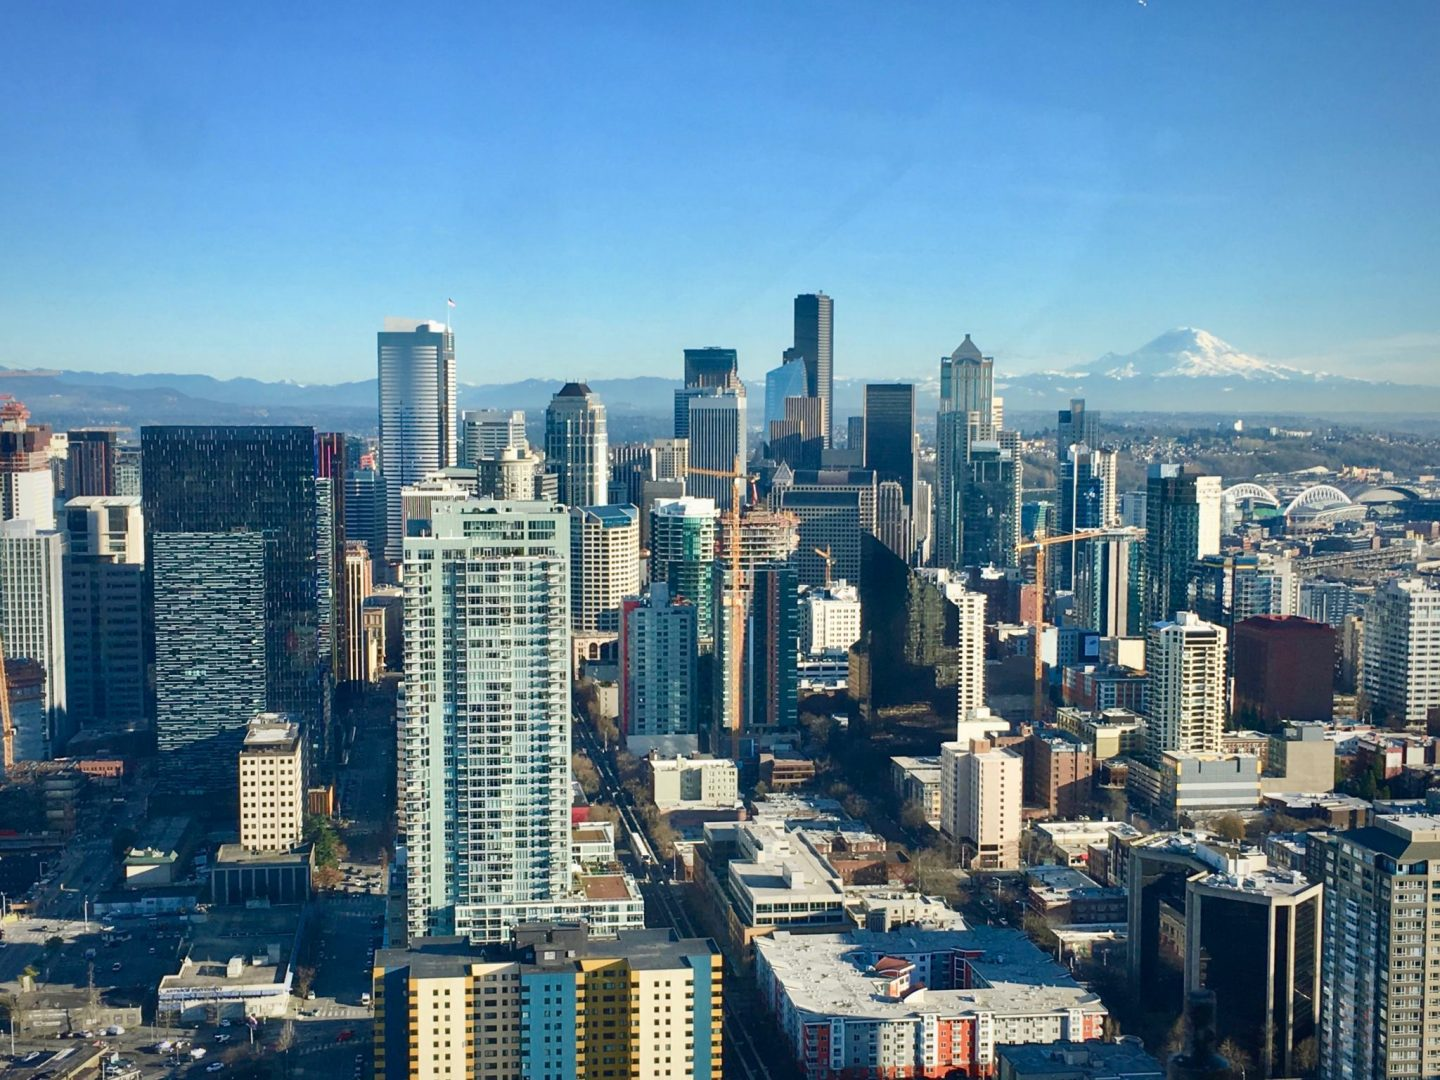 Seattle, Washington (view from Space Needle) - The Spectacular Adventurer